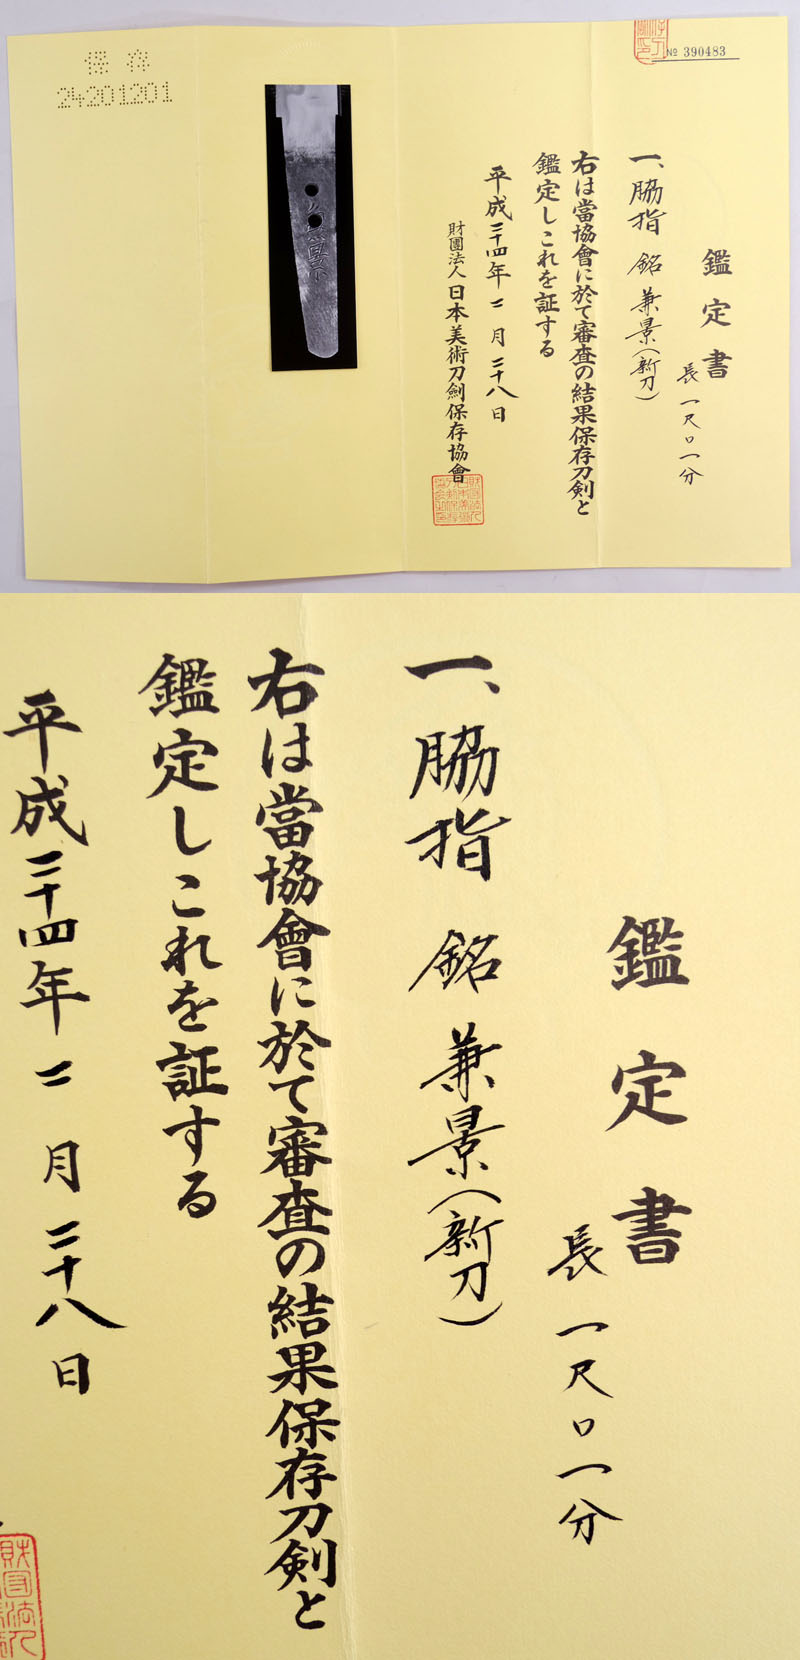 兼景 Picture of Certificate